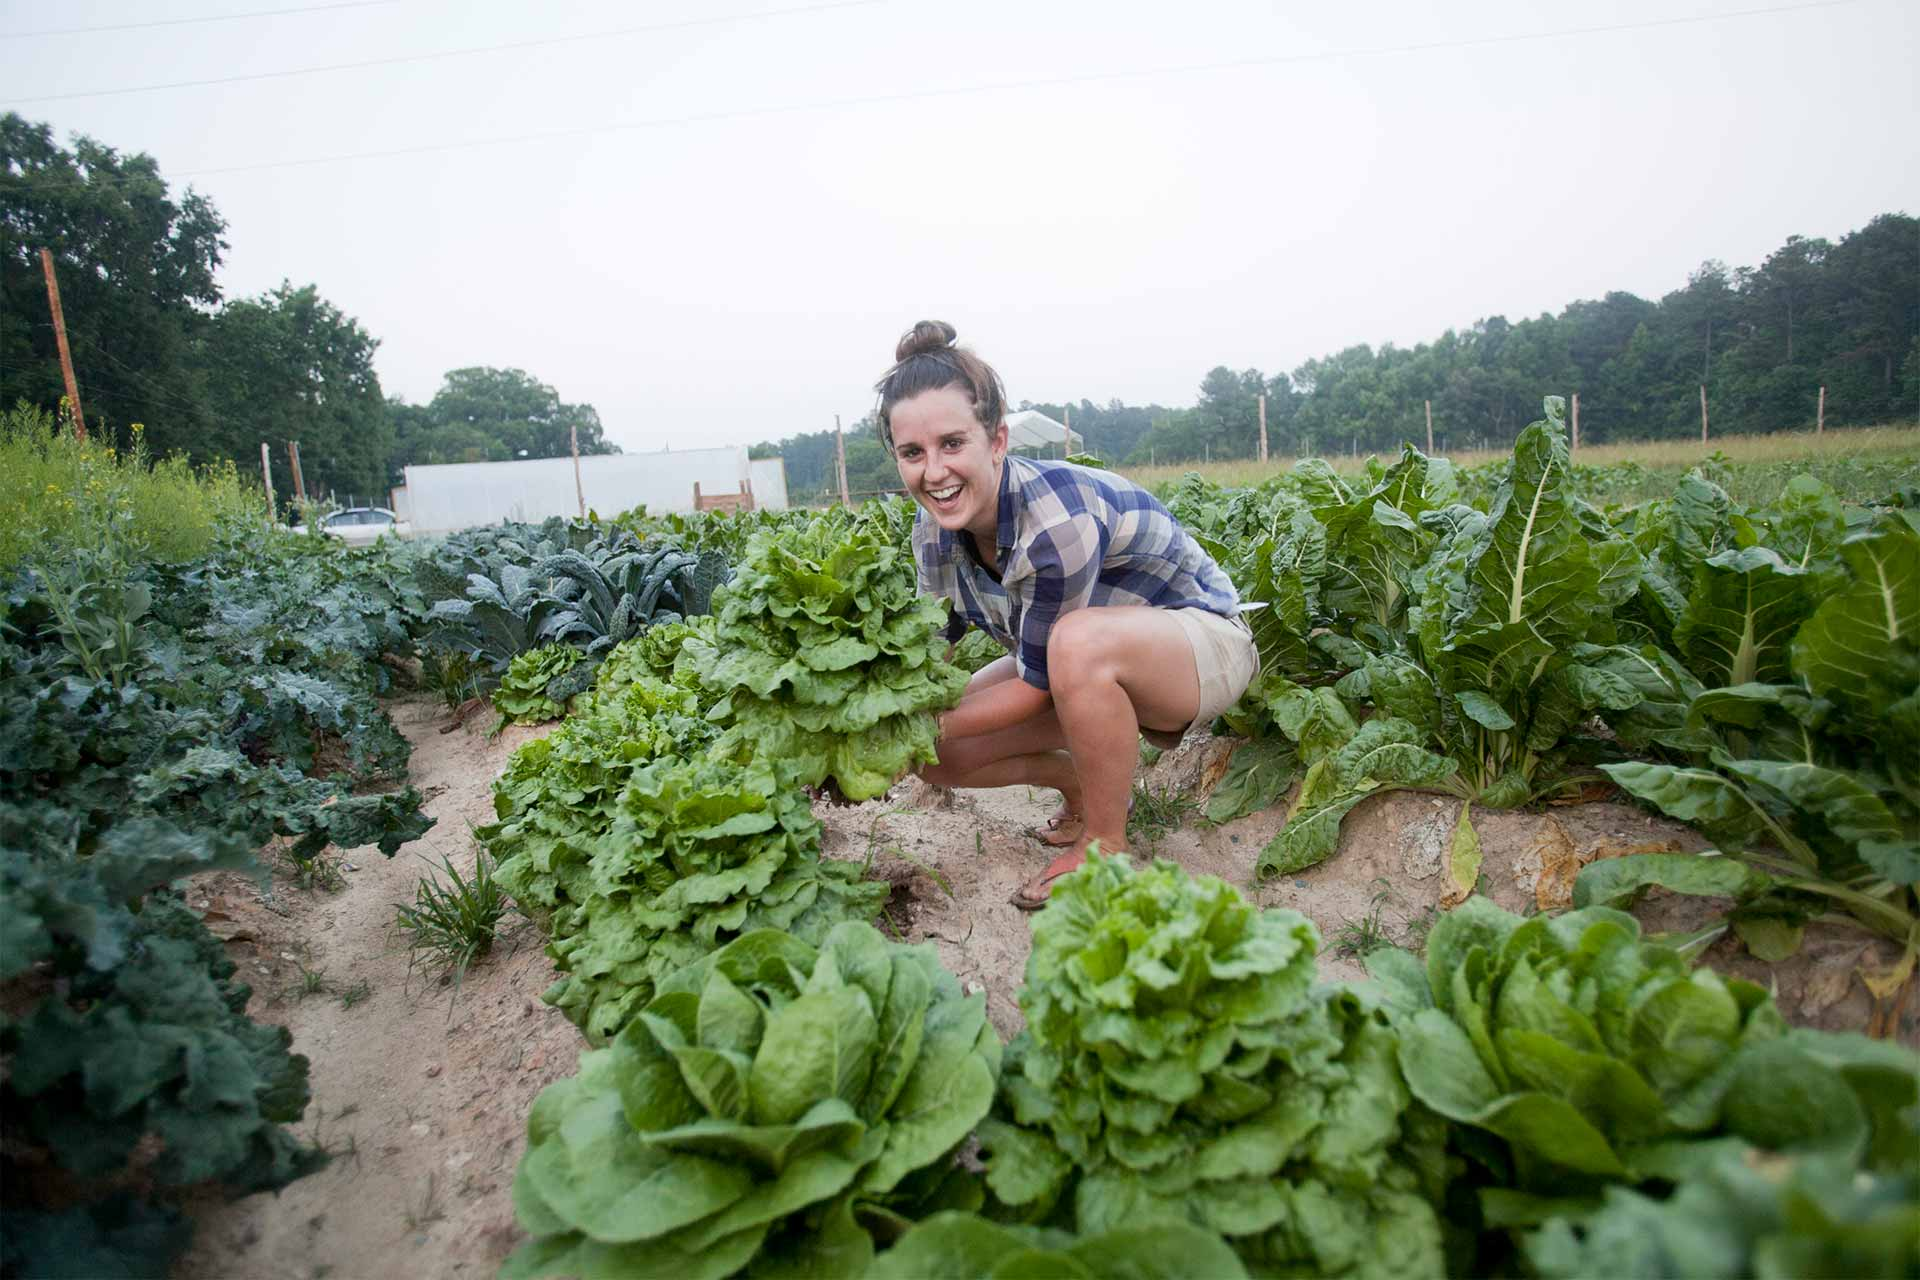 A student worker plucks a head of lettuce from the field at the Duke Campus Farm